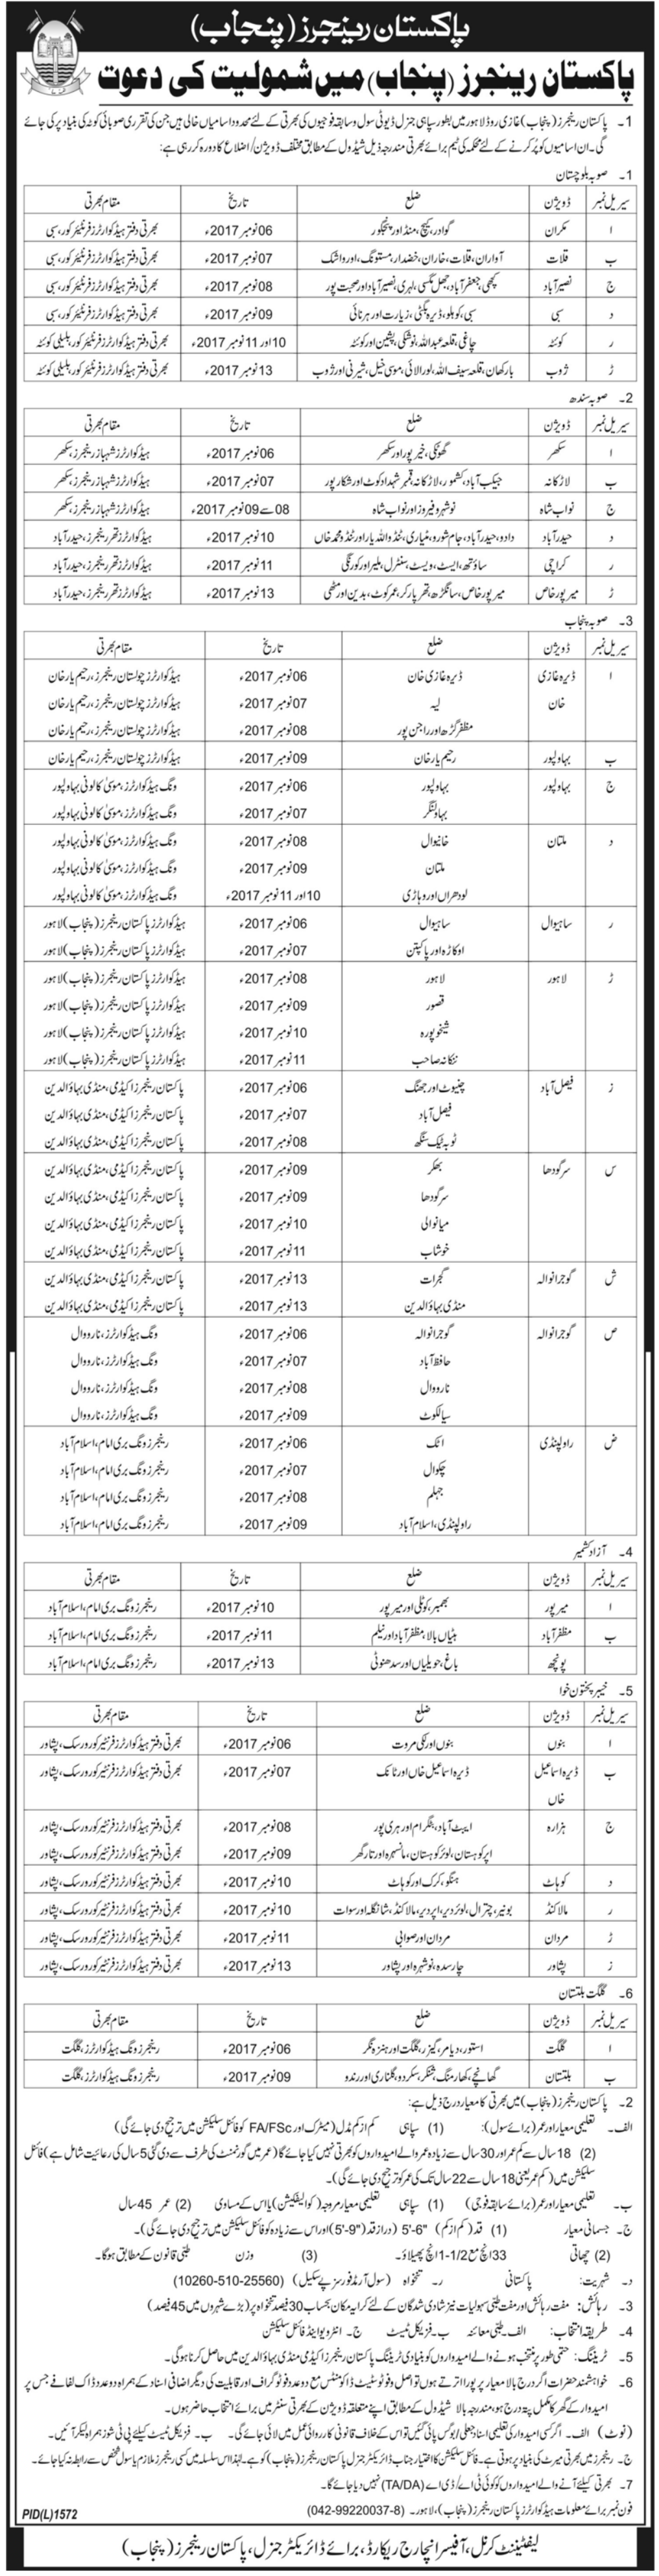 Pakistan Rangers Jobs 2017